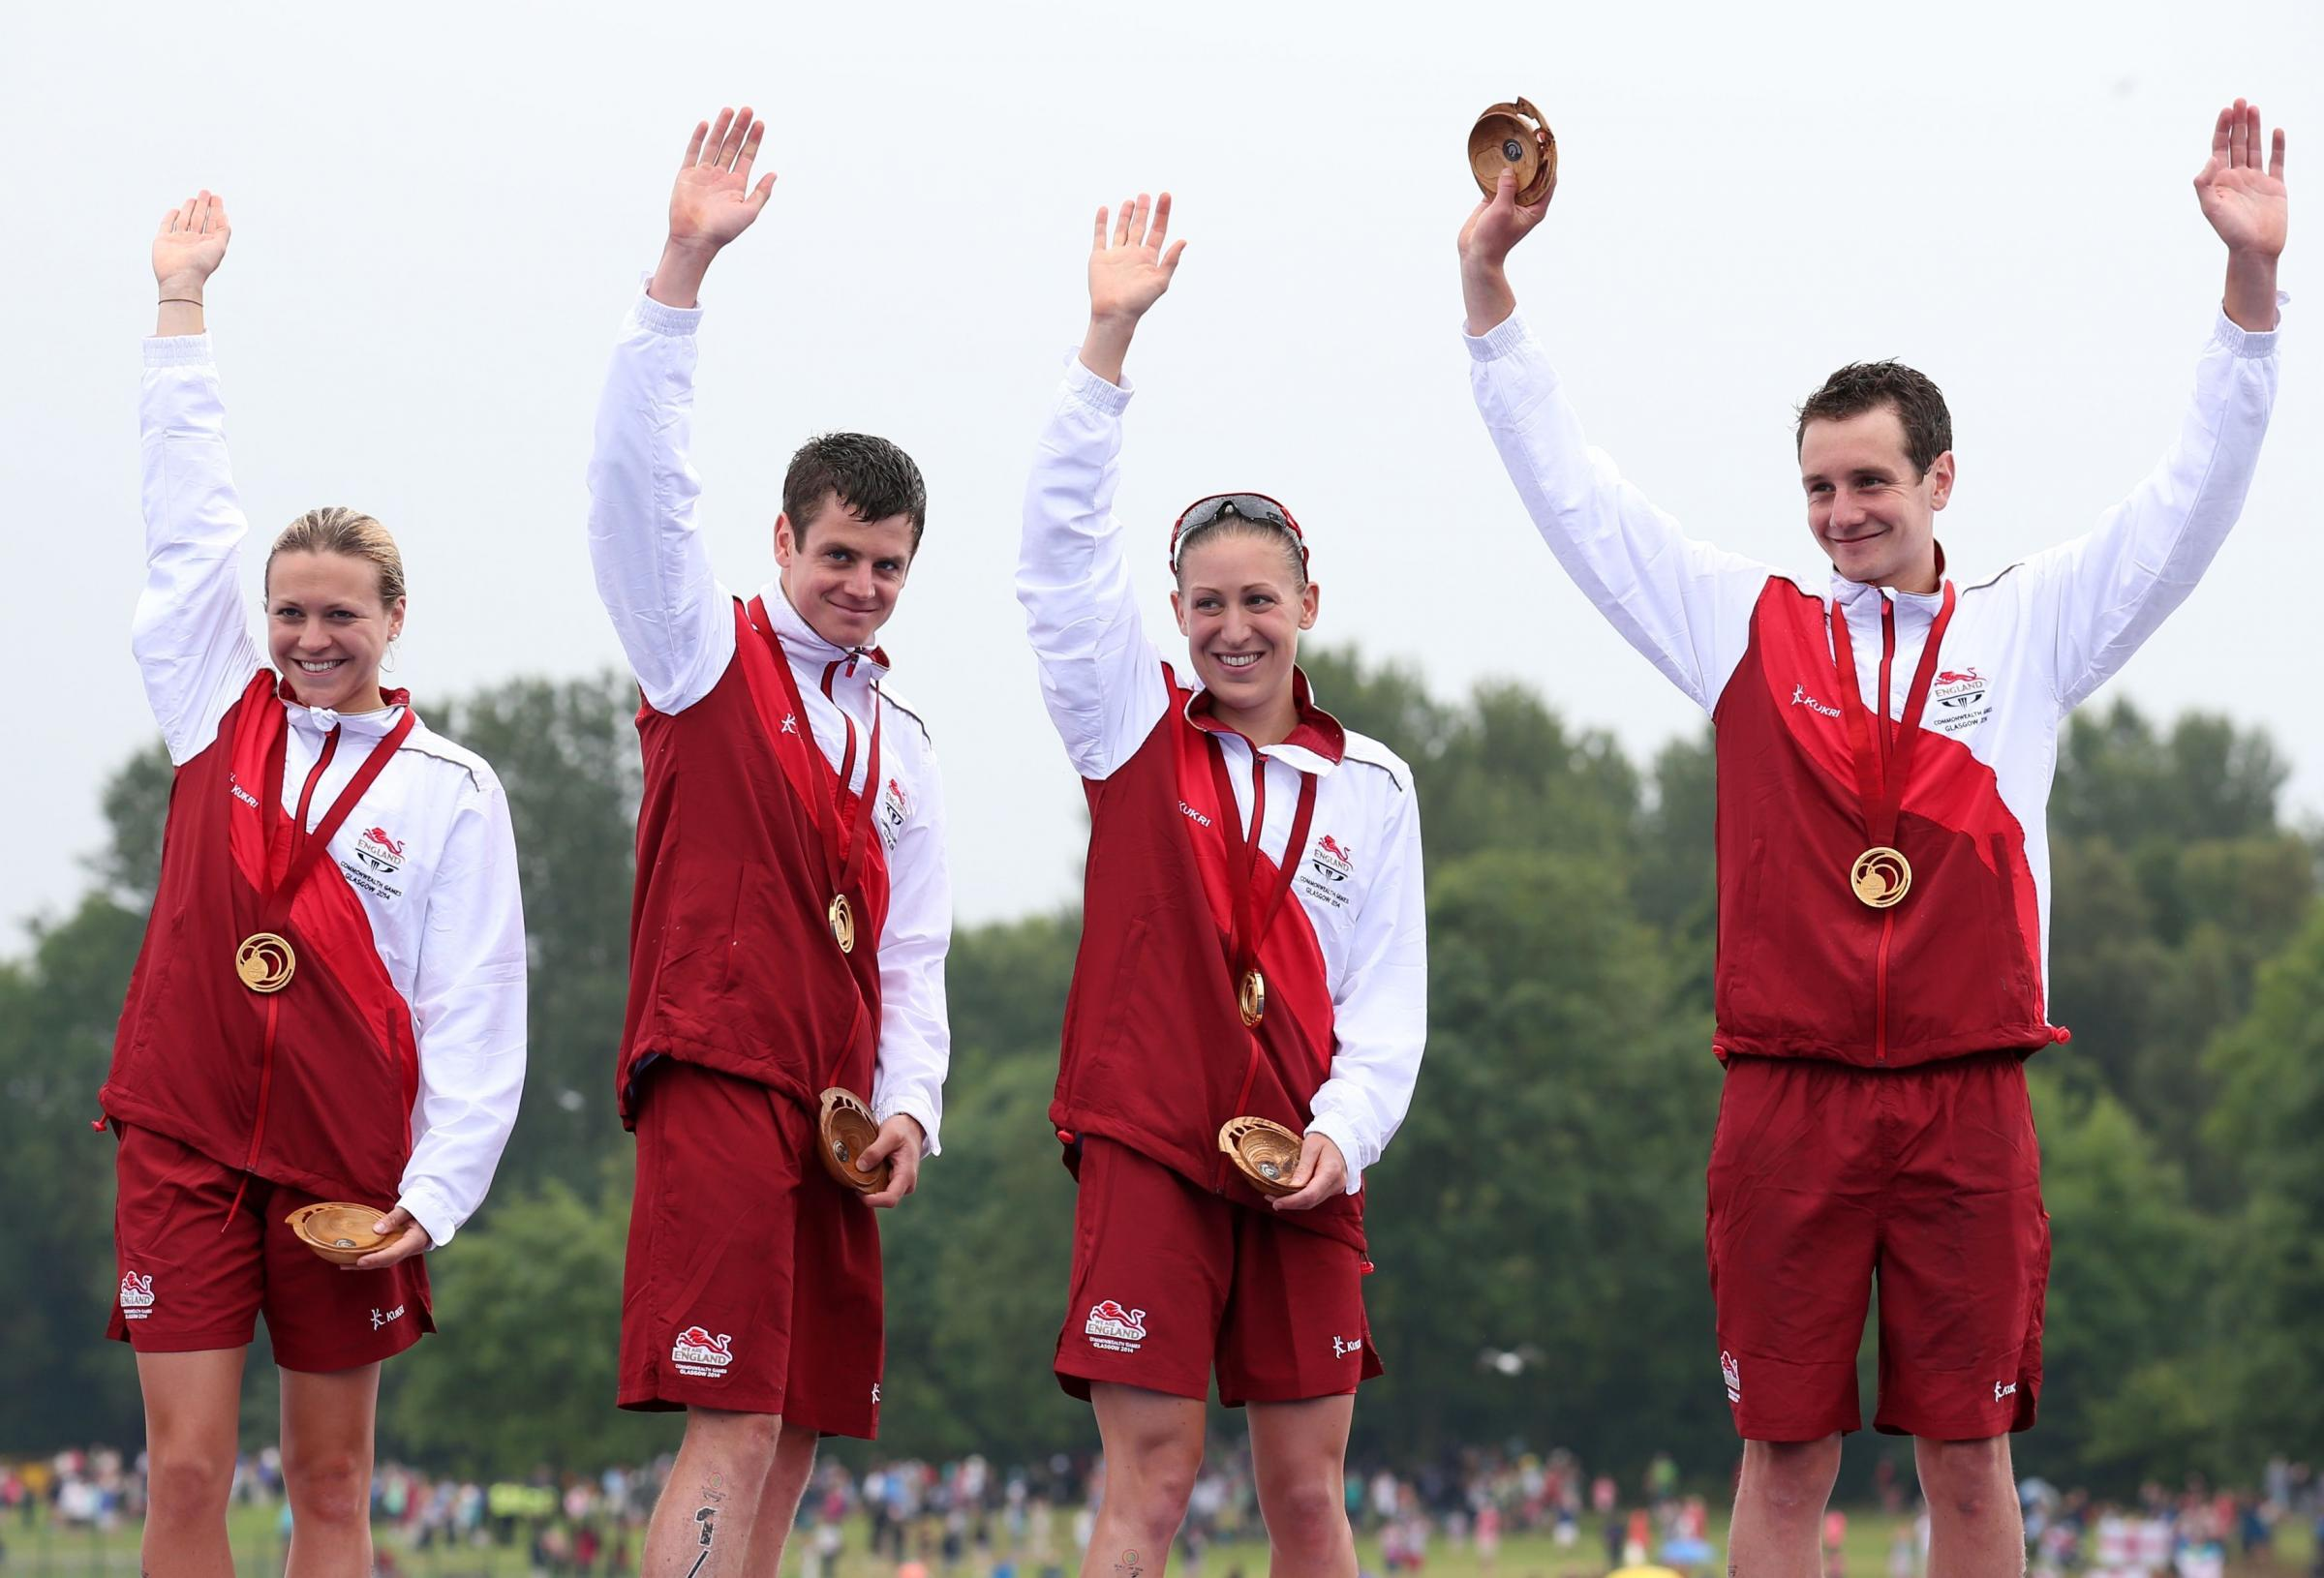 Golden Brownlees praised by proud community after Commonwealth Games victory